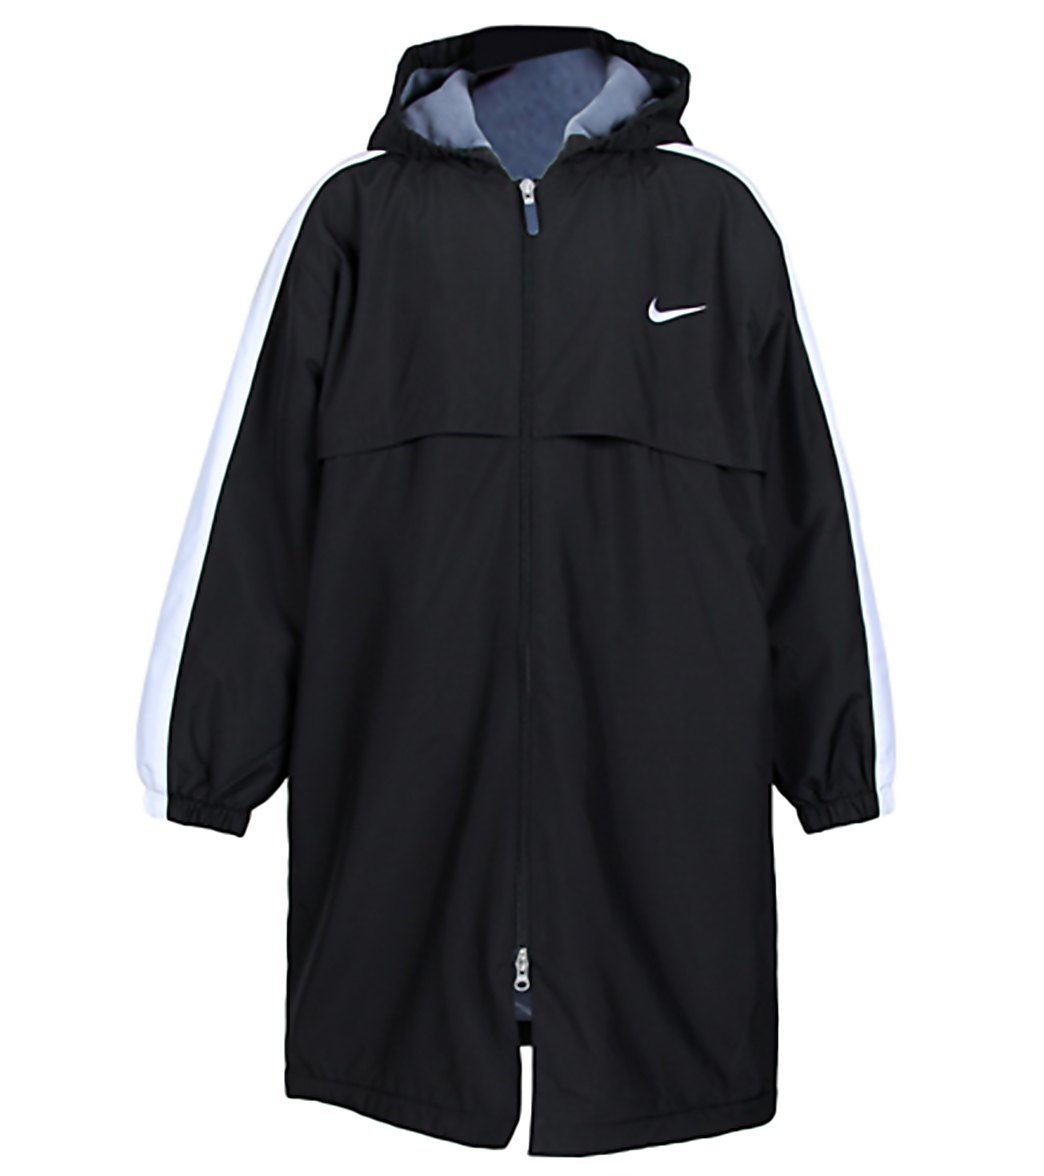 Nike Swim Parka Youth at SwimOutlet.com - Free Shipping